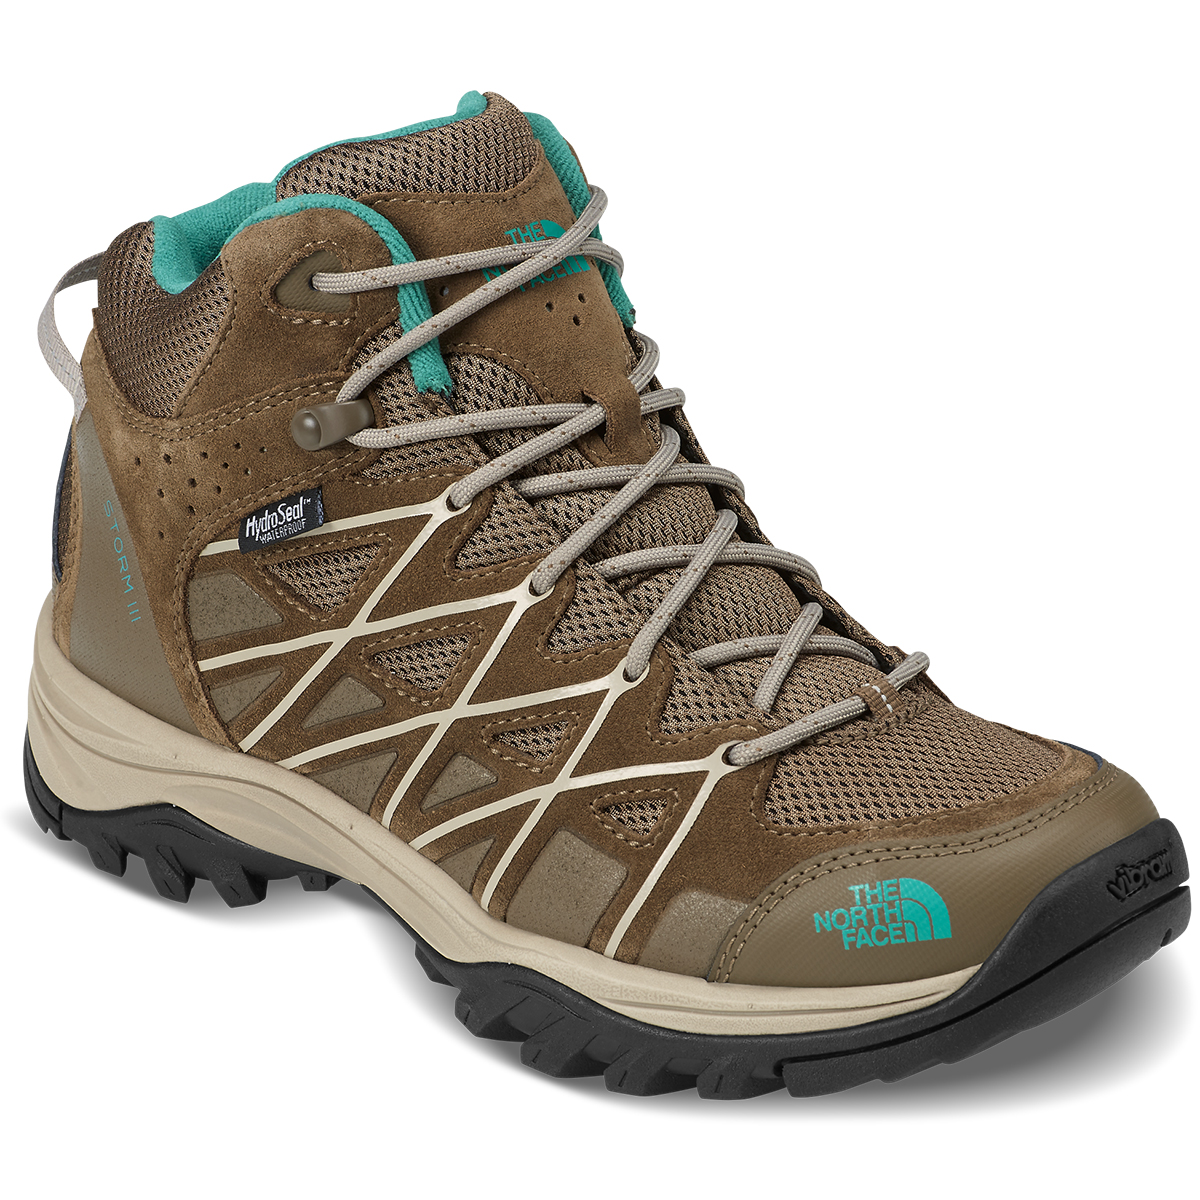 The North Face Women's Storm Iii Mid Waterproof Hiking Boots - Brown, 9.5